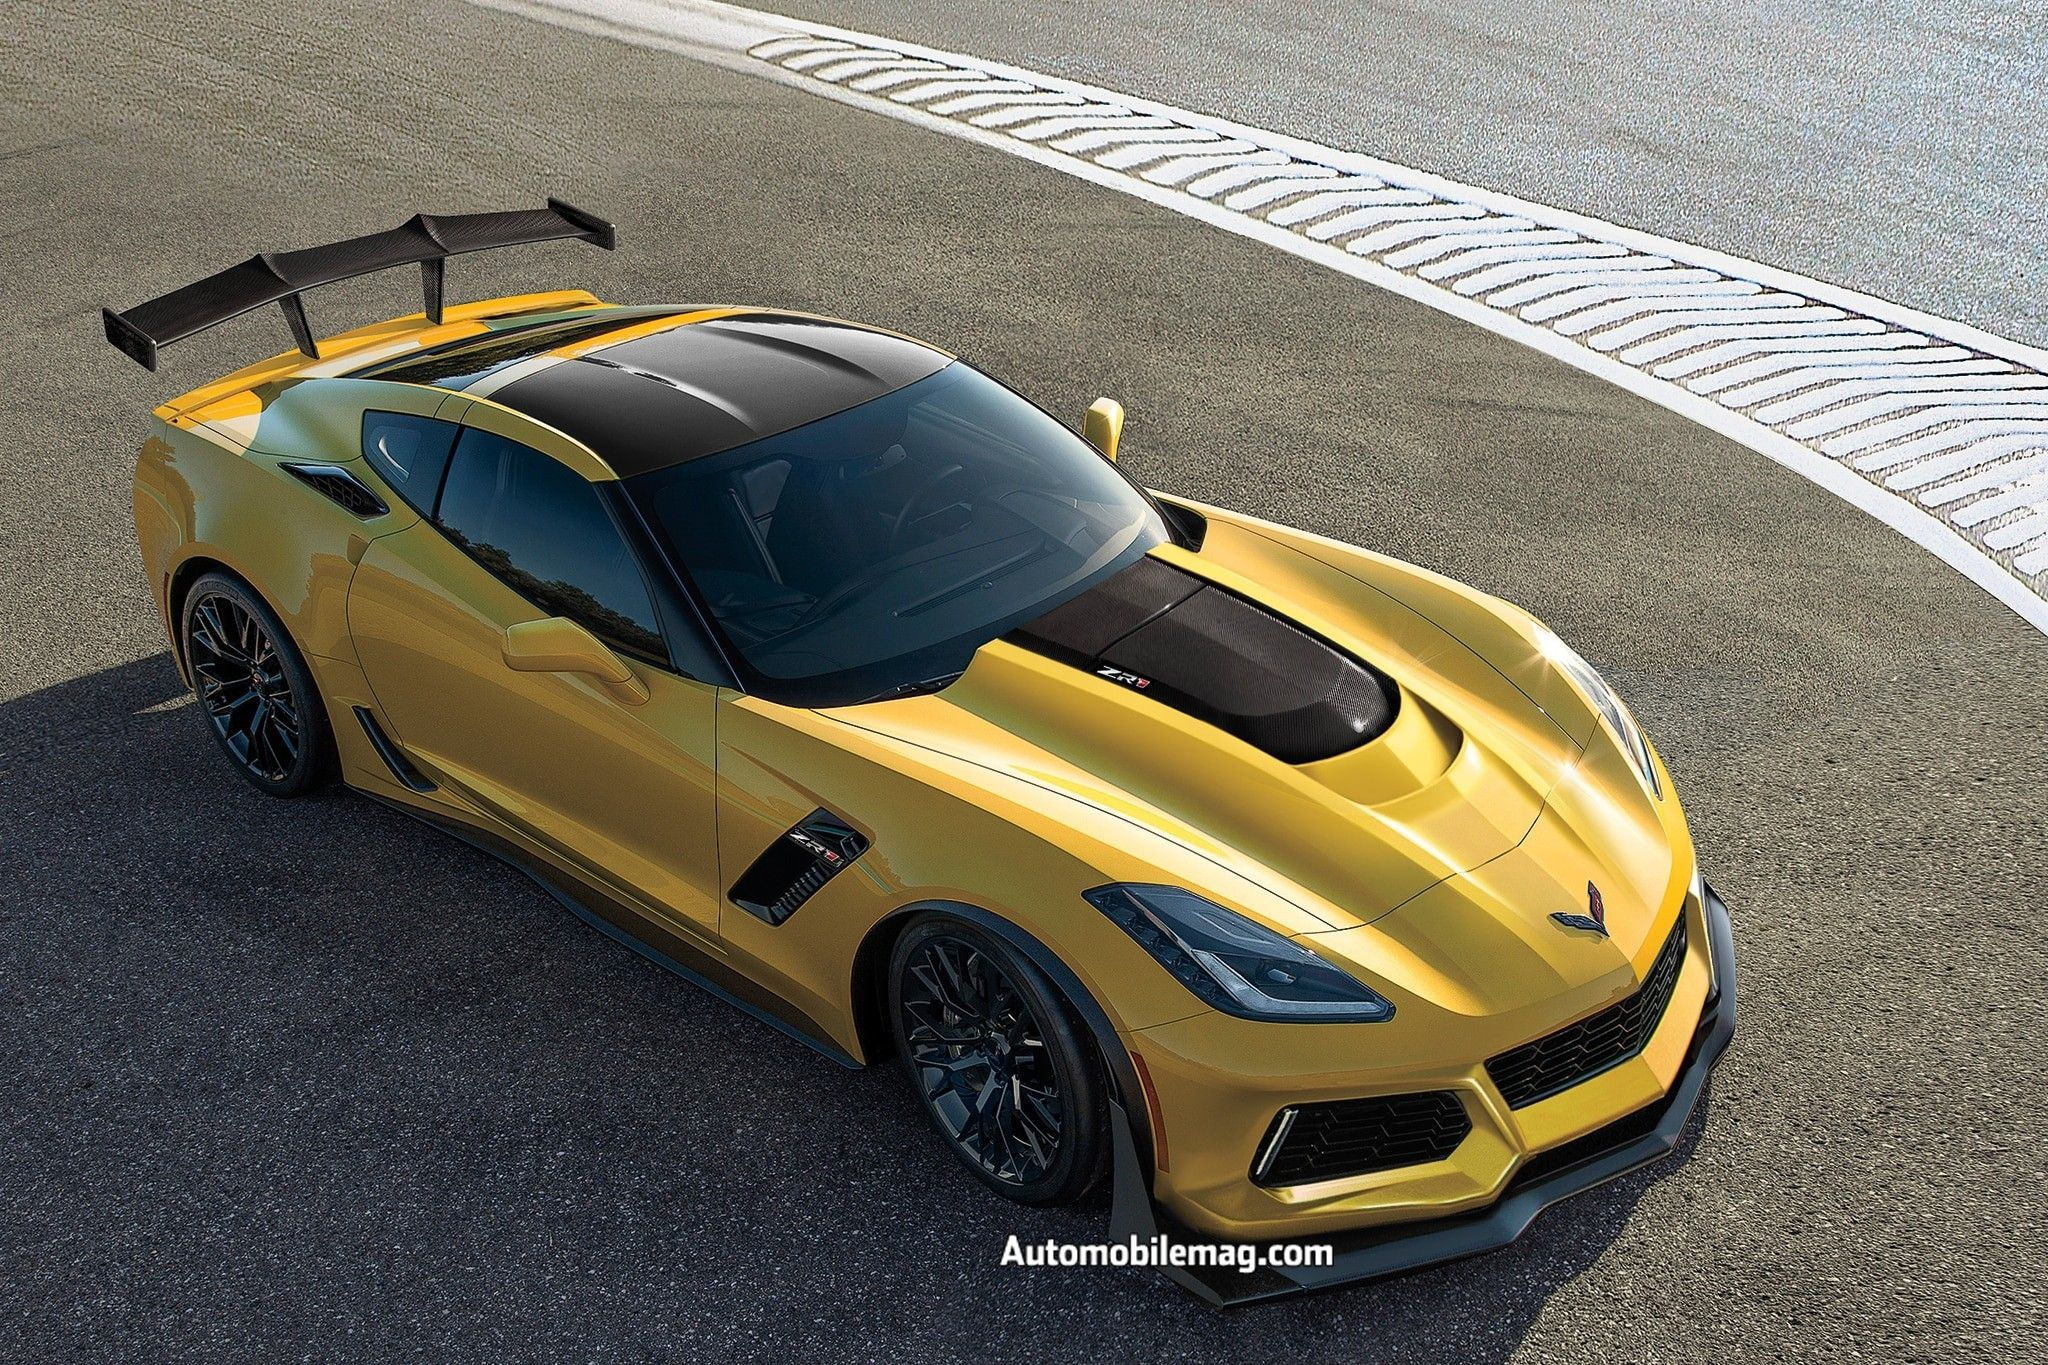 2019 Corvette Stingray Price Corvette Zr1 Corvette